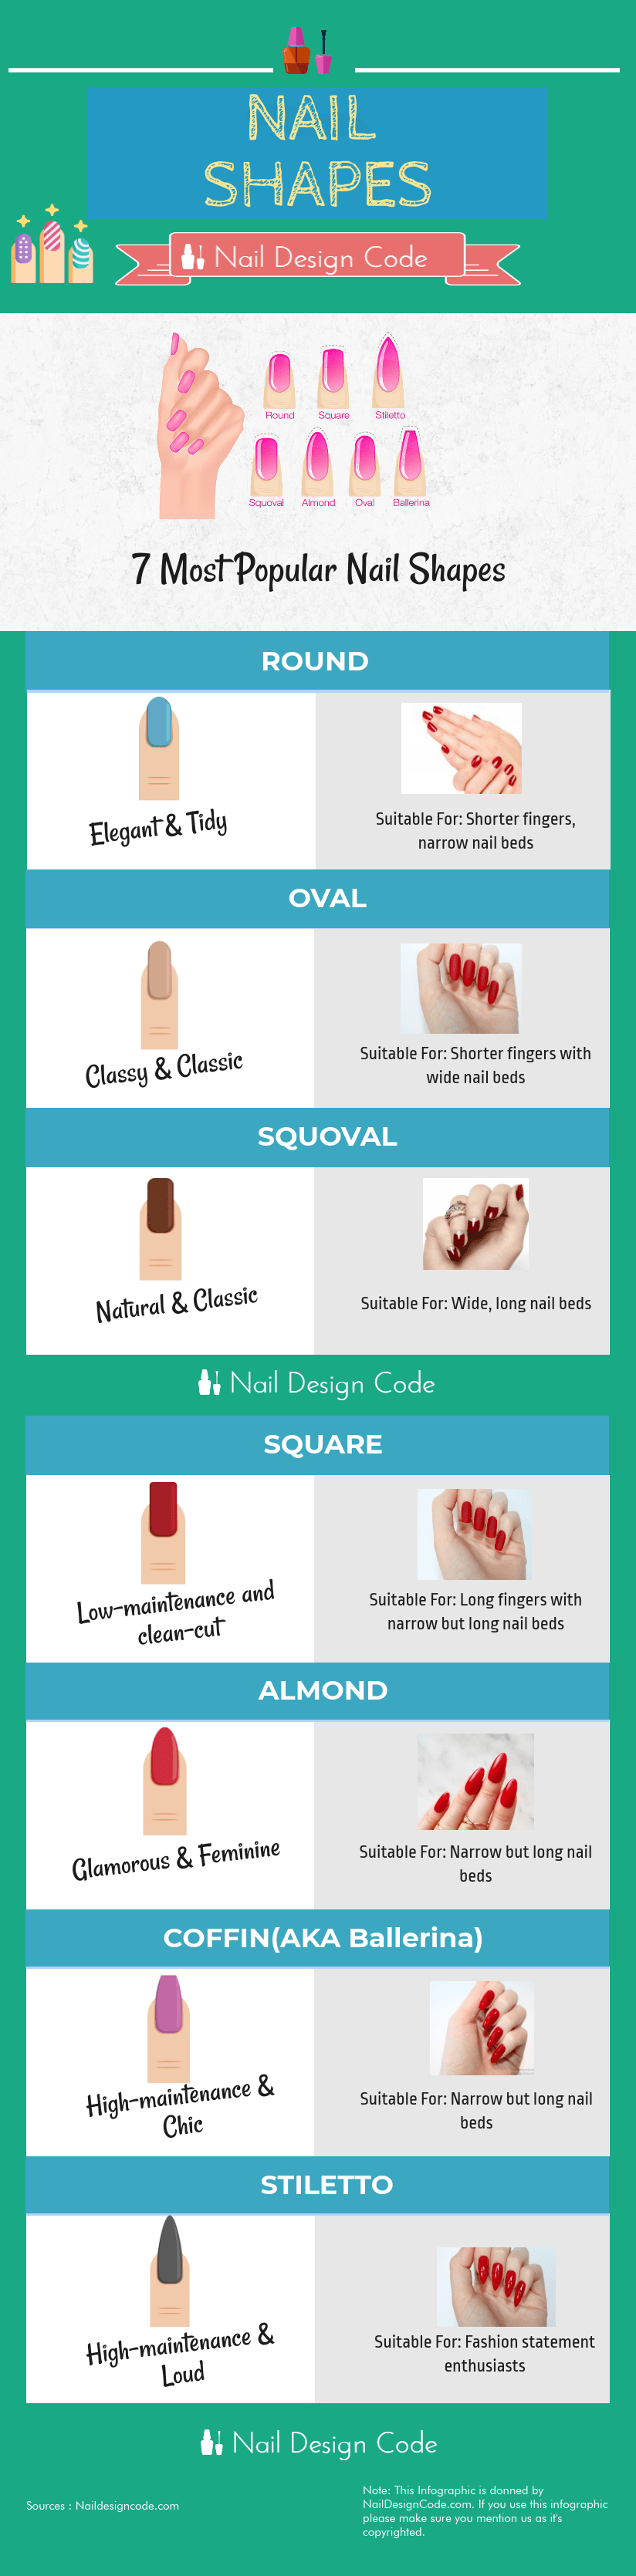 nail shapes infographic by Naildesigncode